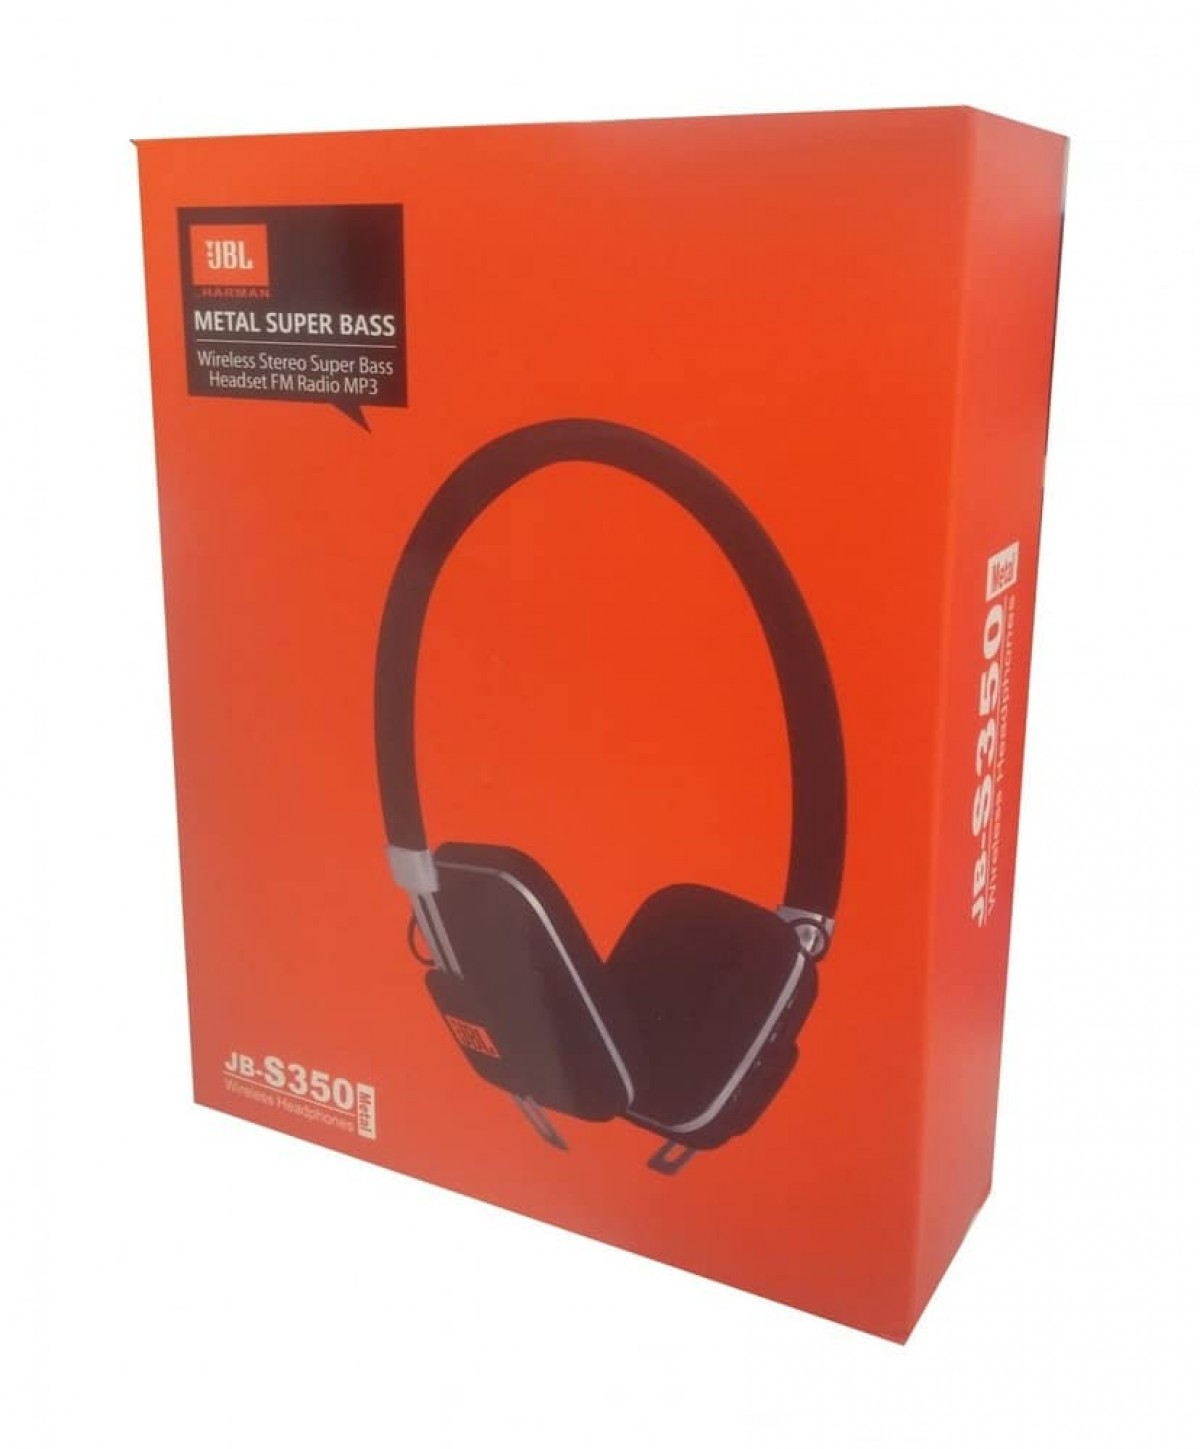 Jb Lighting Wireless Jbl Jb S350 Metal Super Bass Wireless Stereo Headphone With Fm